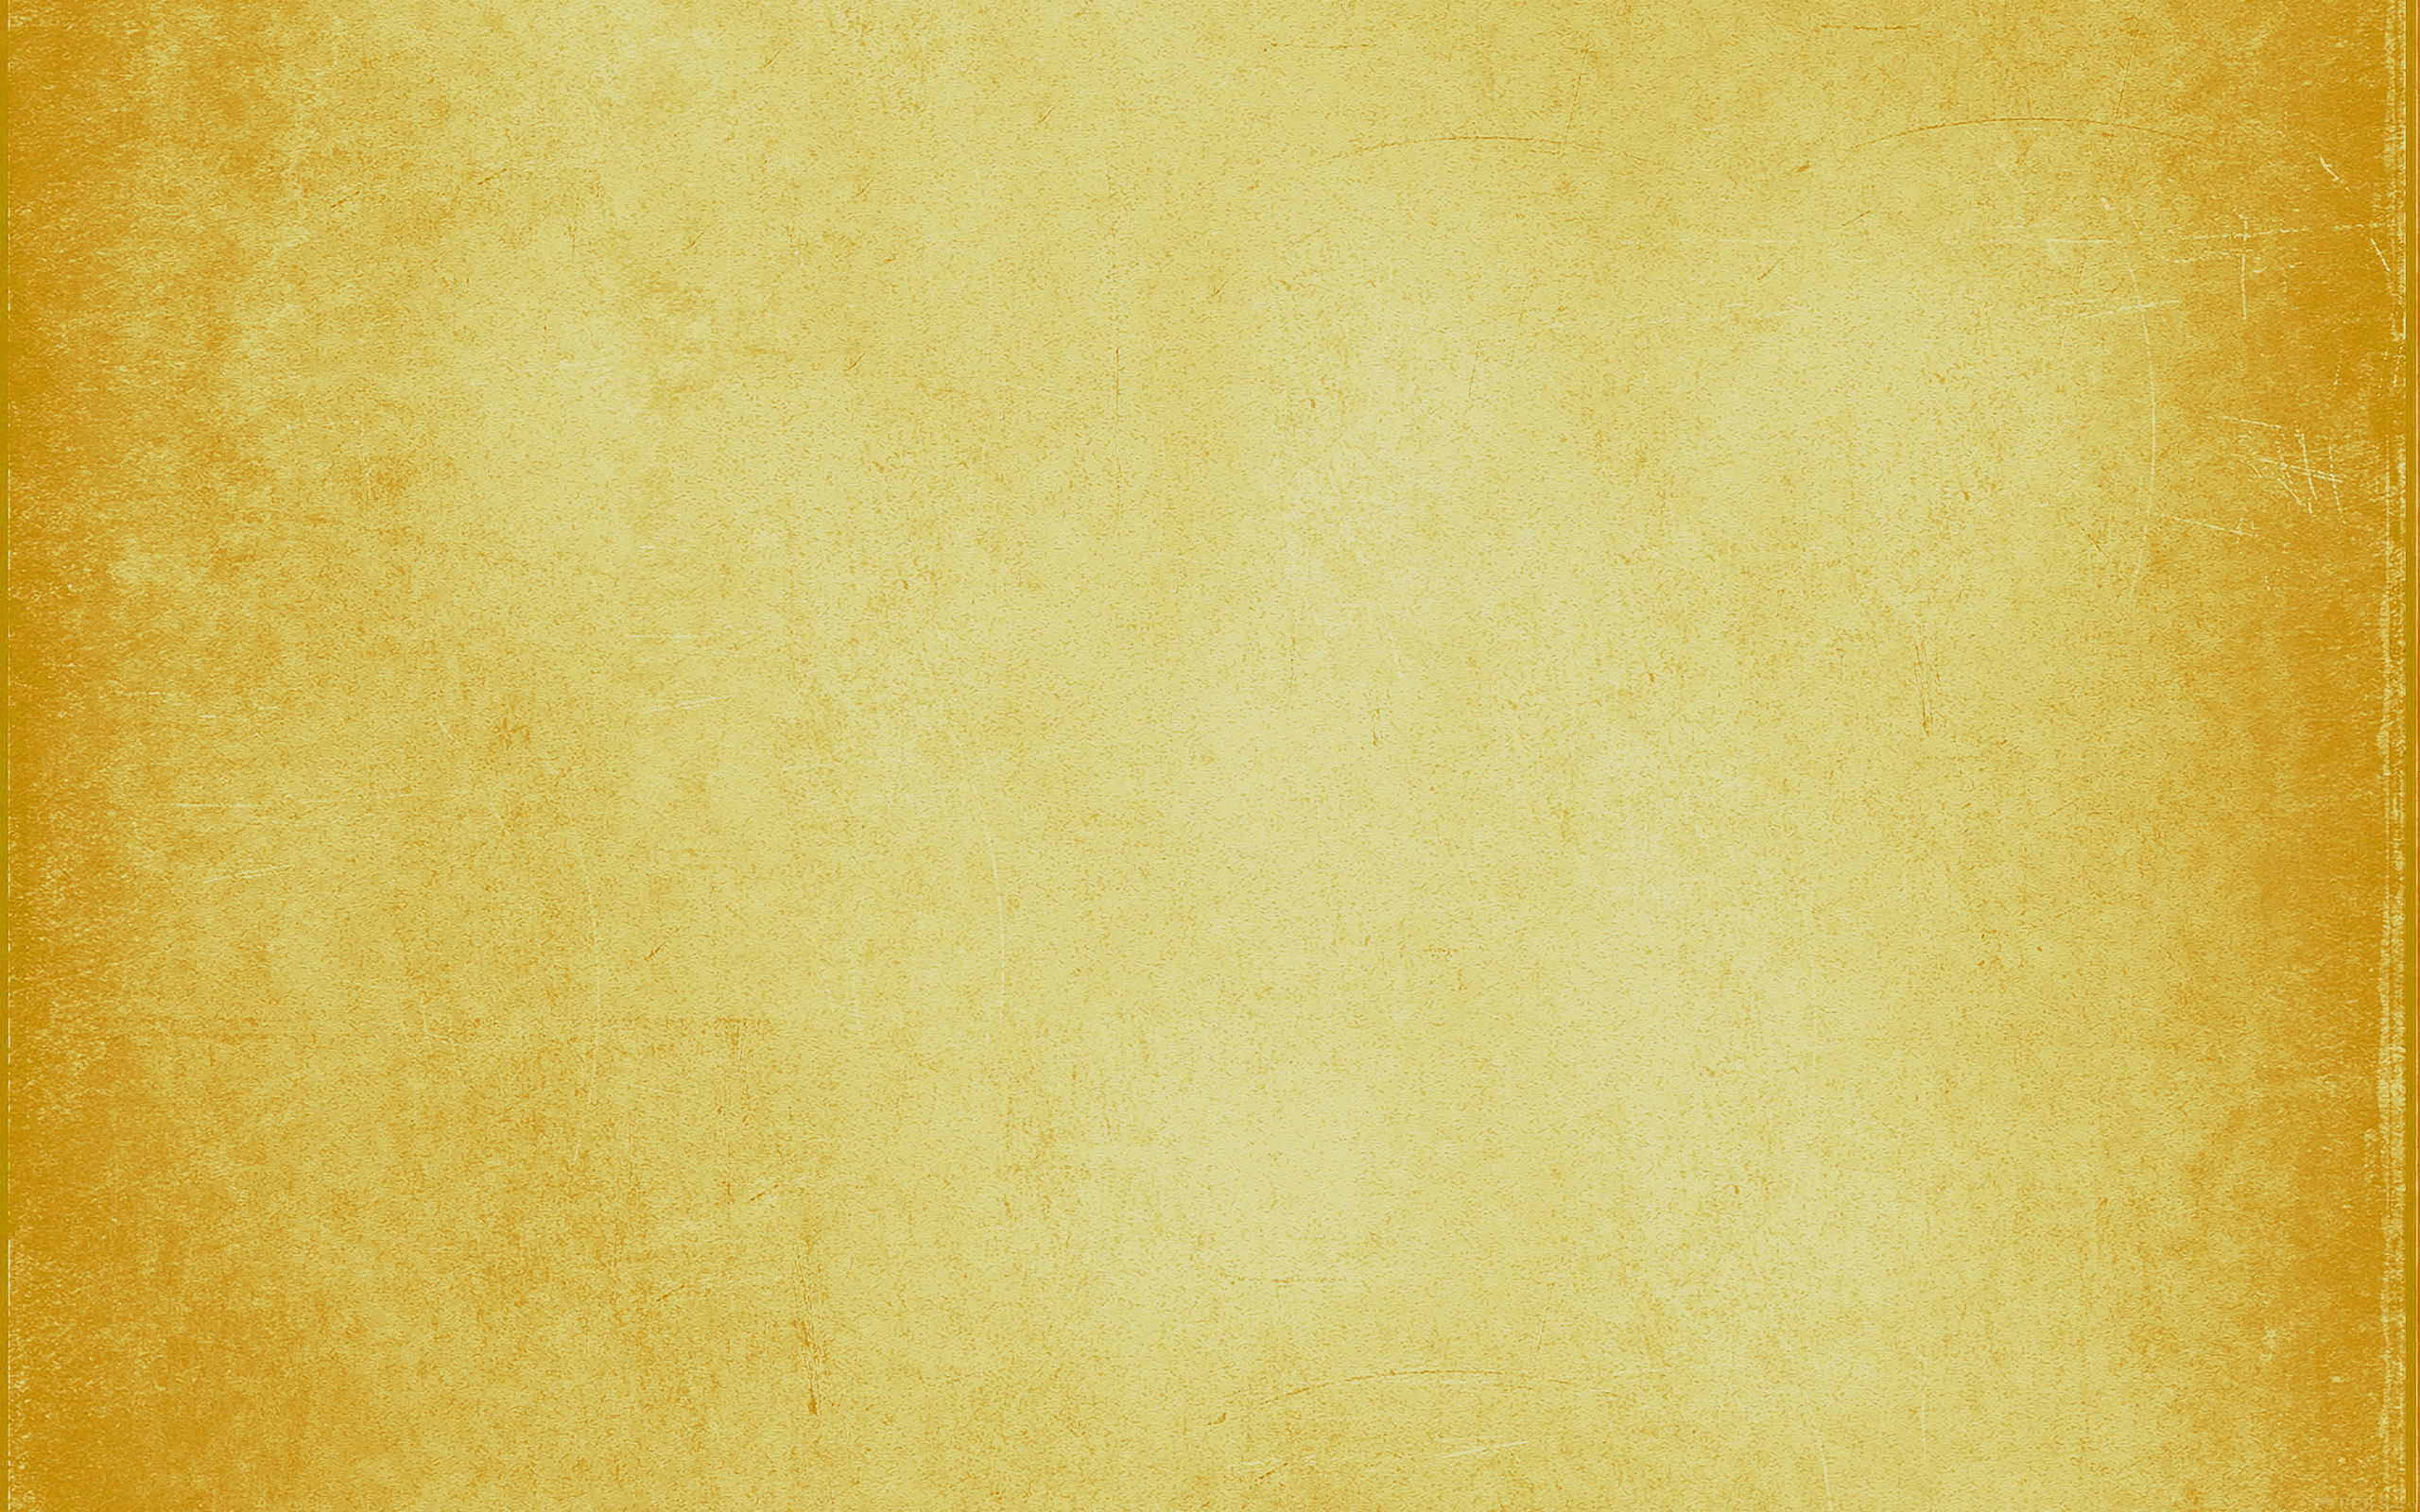 ve15-multicolor-widescreen-yellow-texture-awesome-art ...